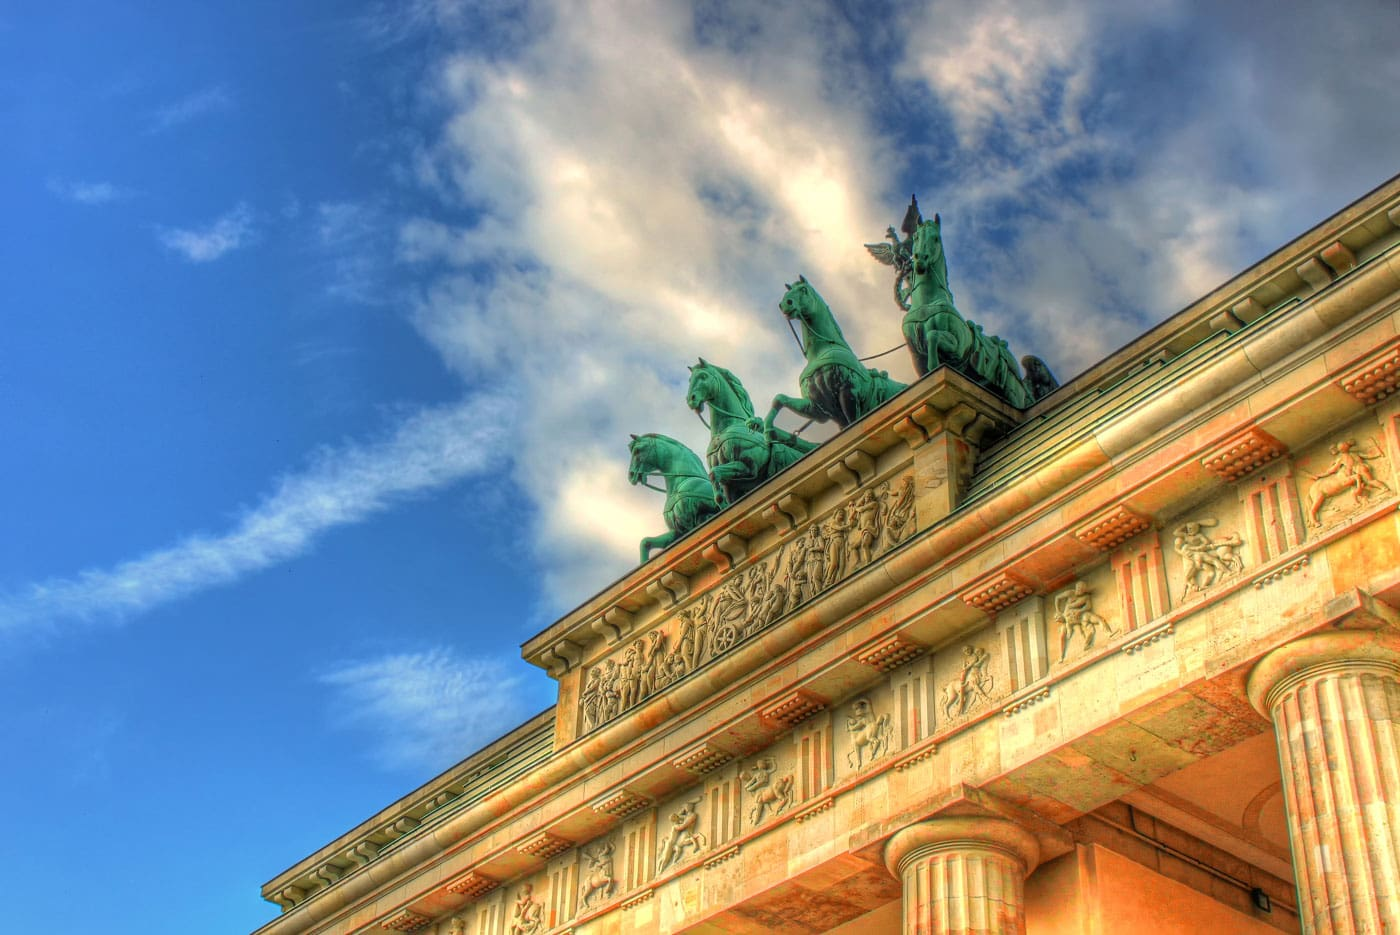 Quadriga on Brandenburg Gate in Berlin with blue sky and clouds